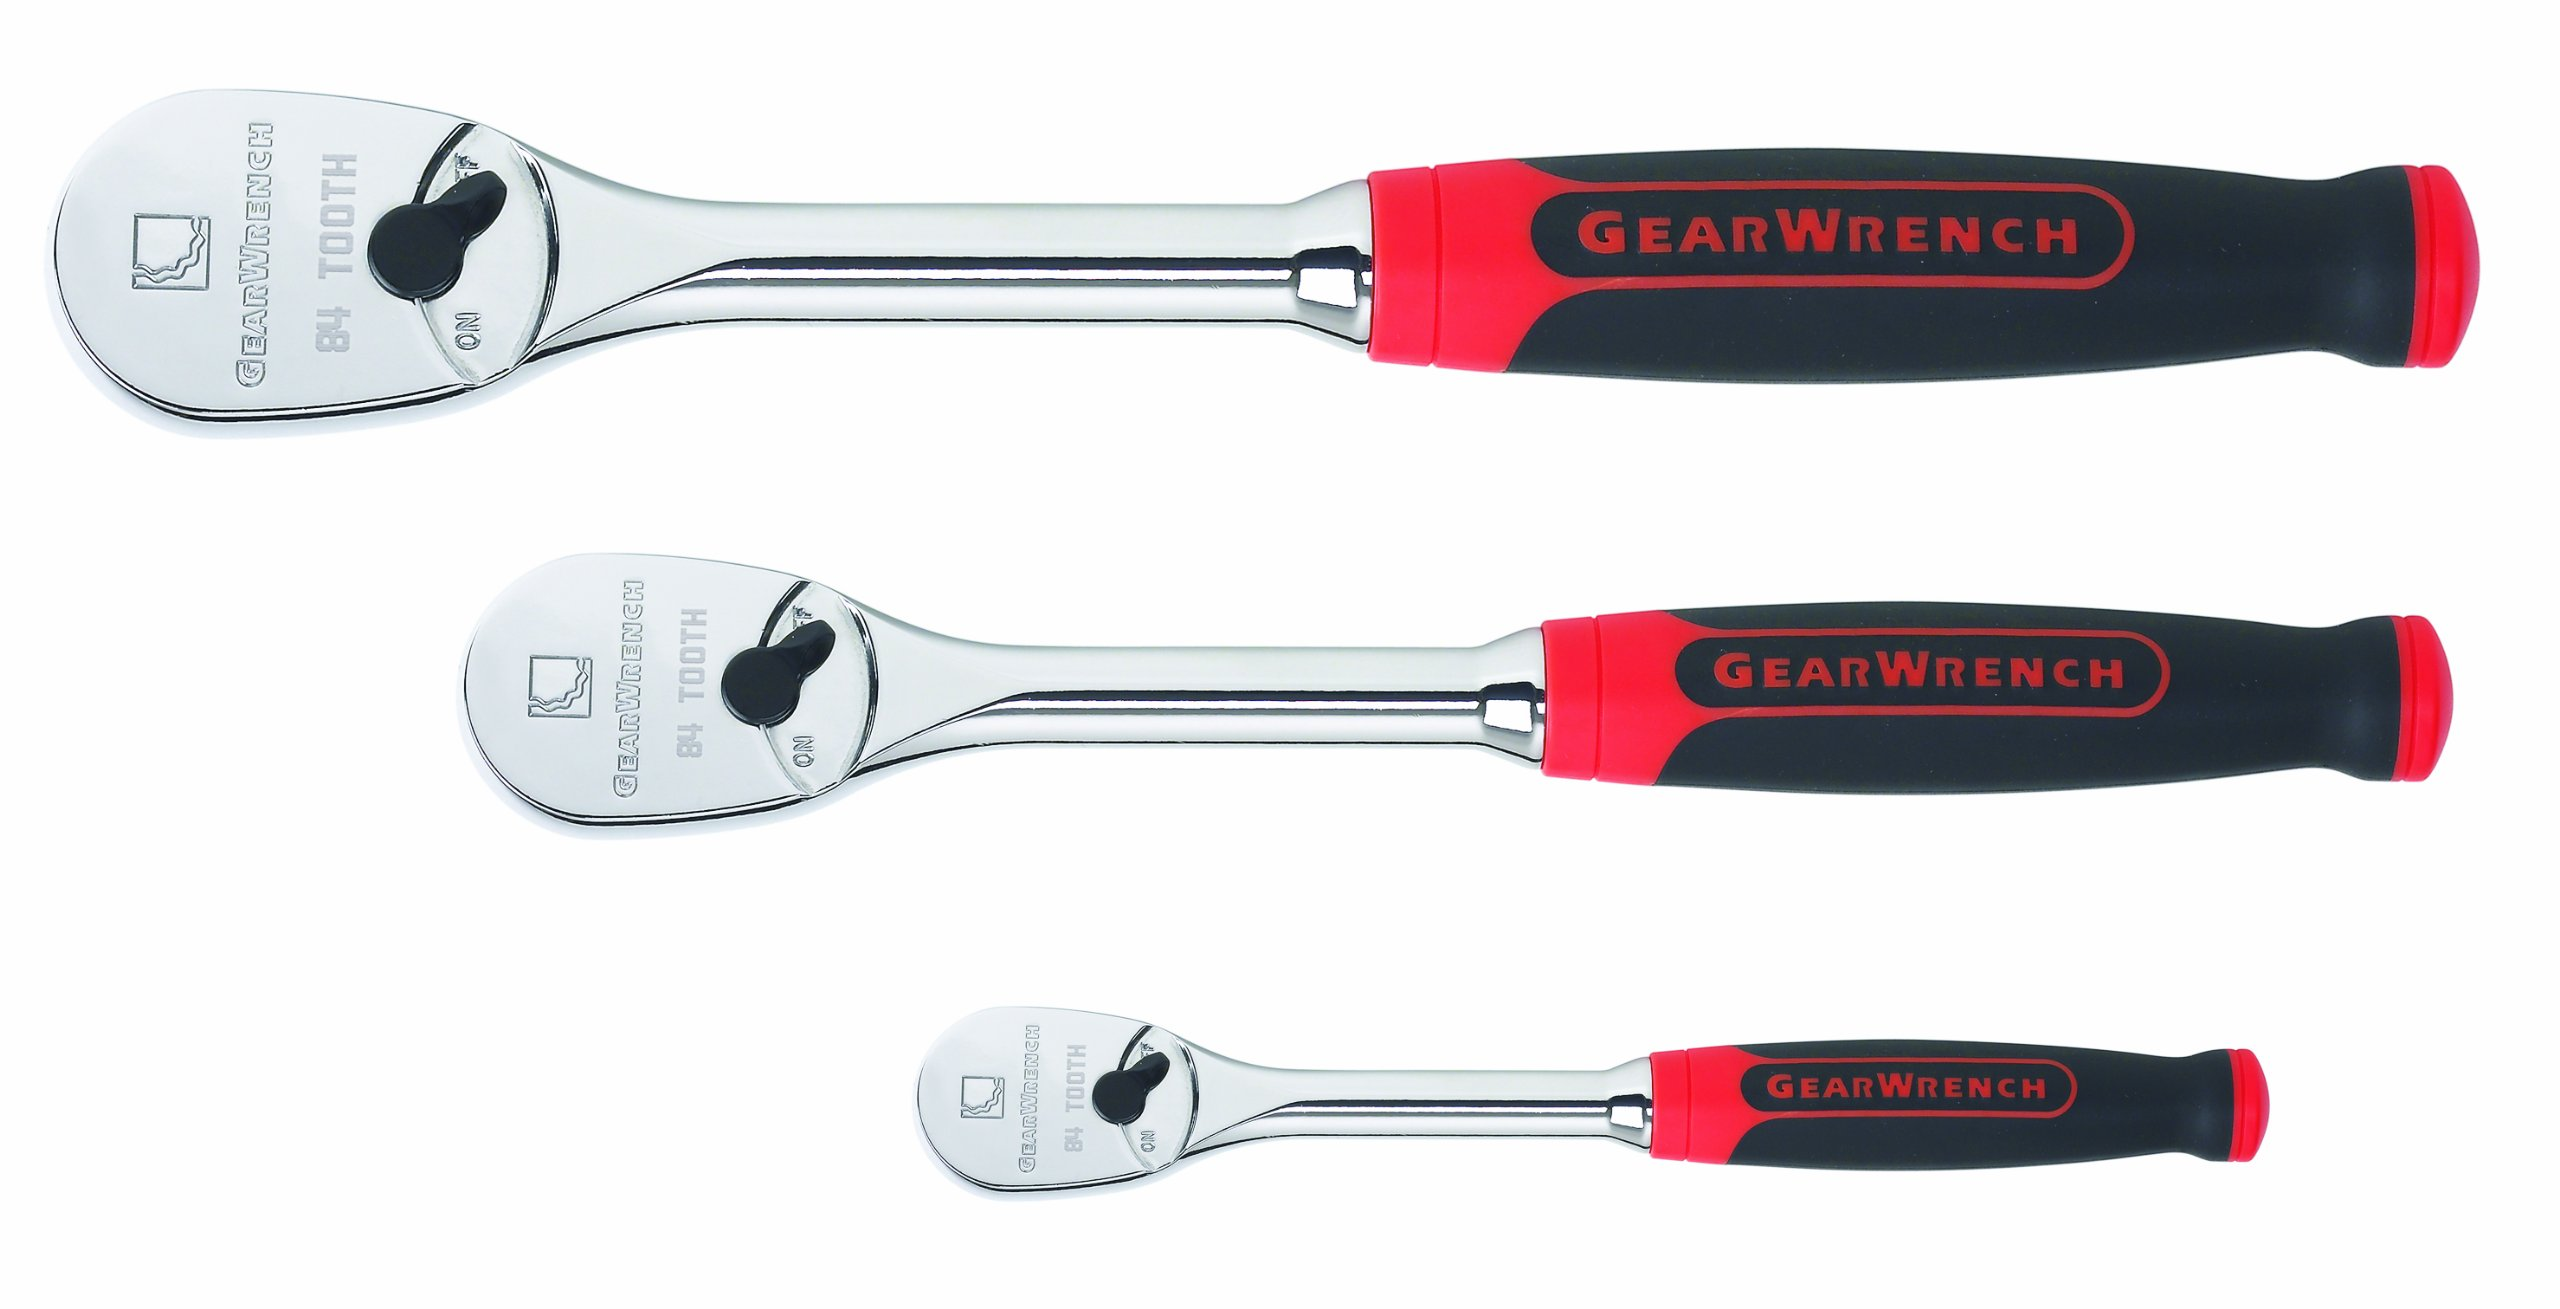 GearWrench 81207F 3 Pc. Cushion Grip 84 Tooth Ratchet Set by GearWrench